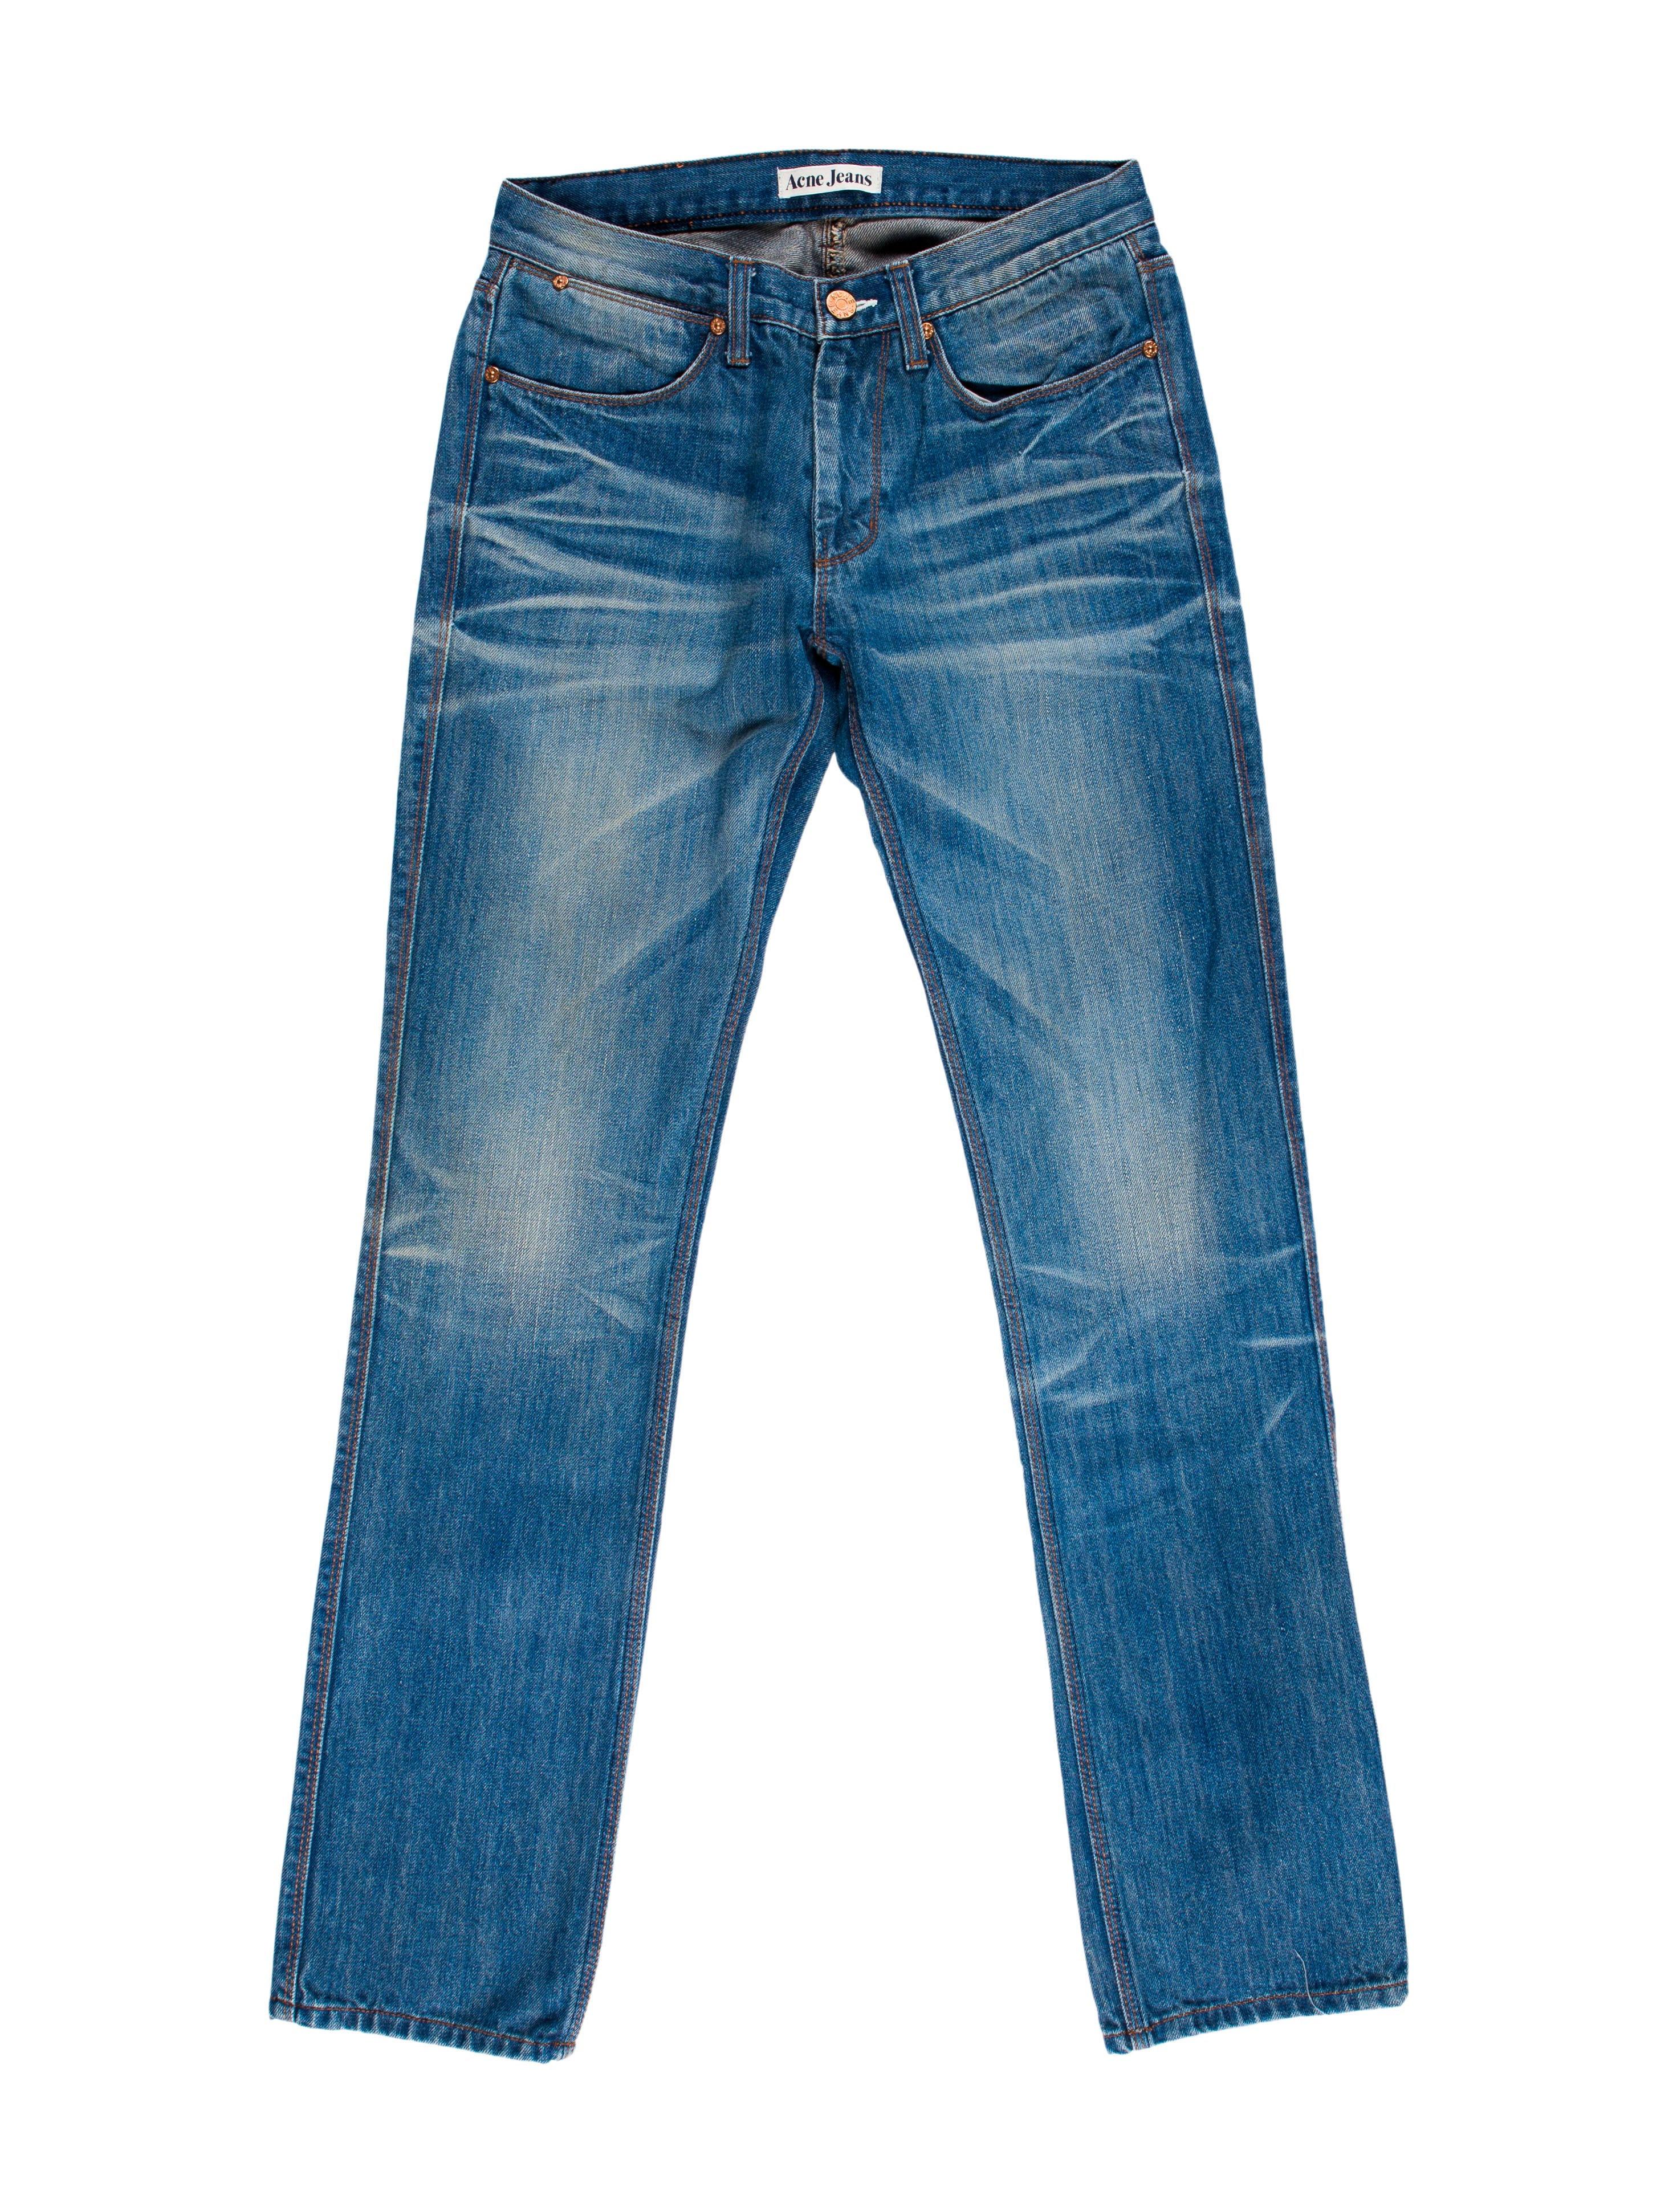 Acne Jeans - Clothing - ACN23225 | The RealReal